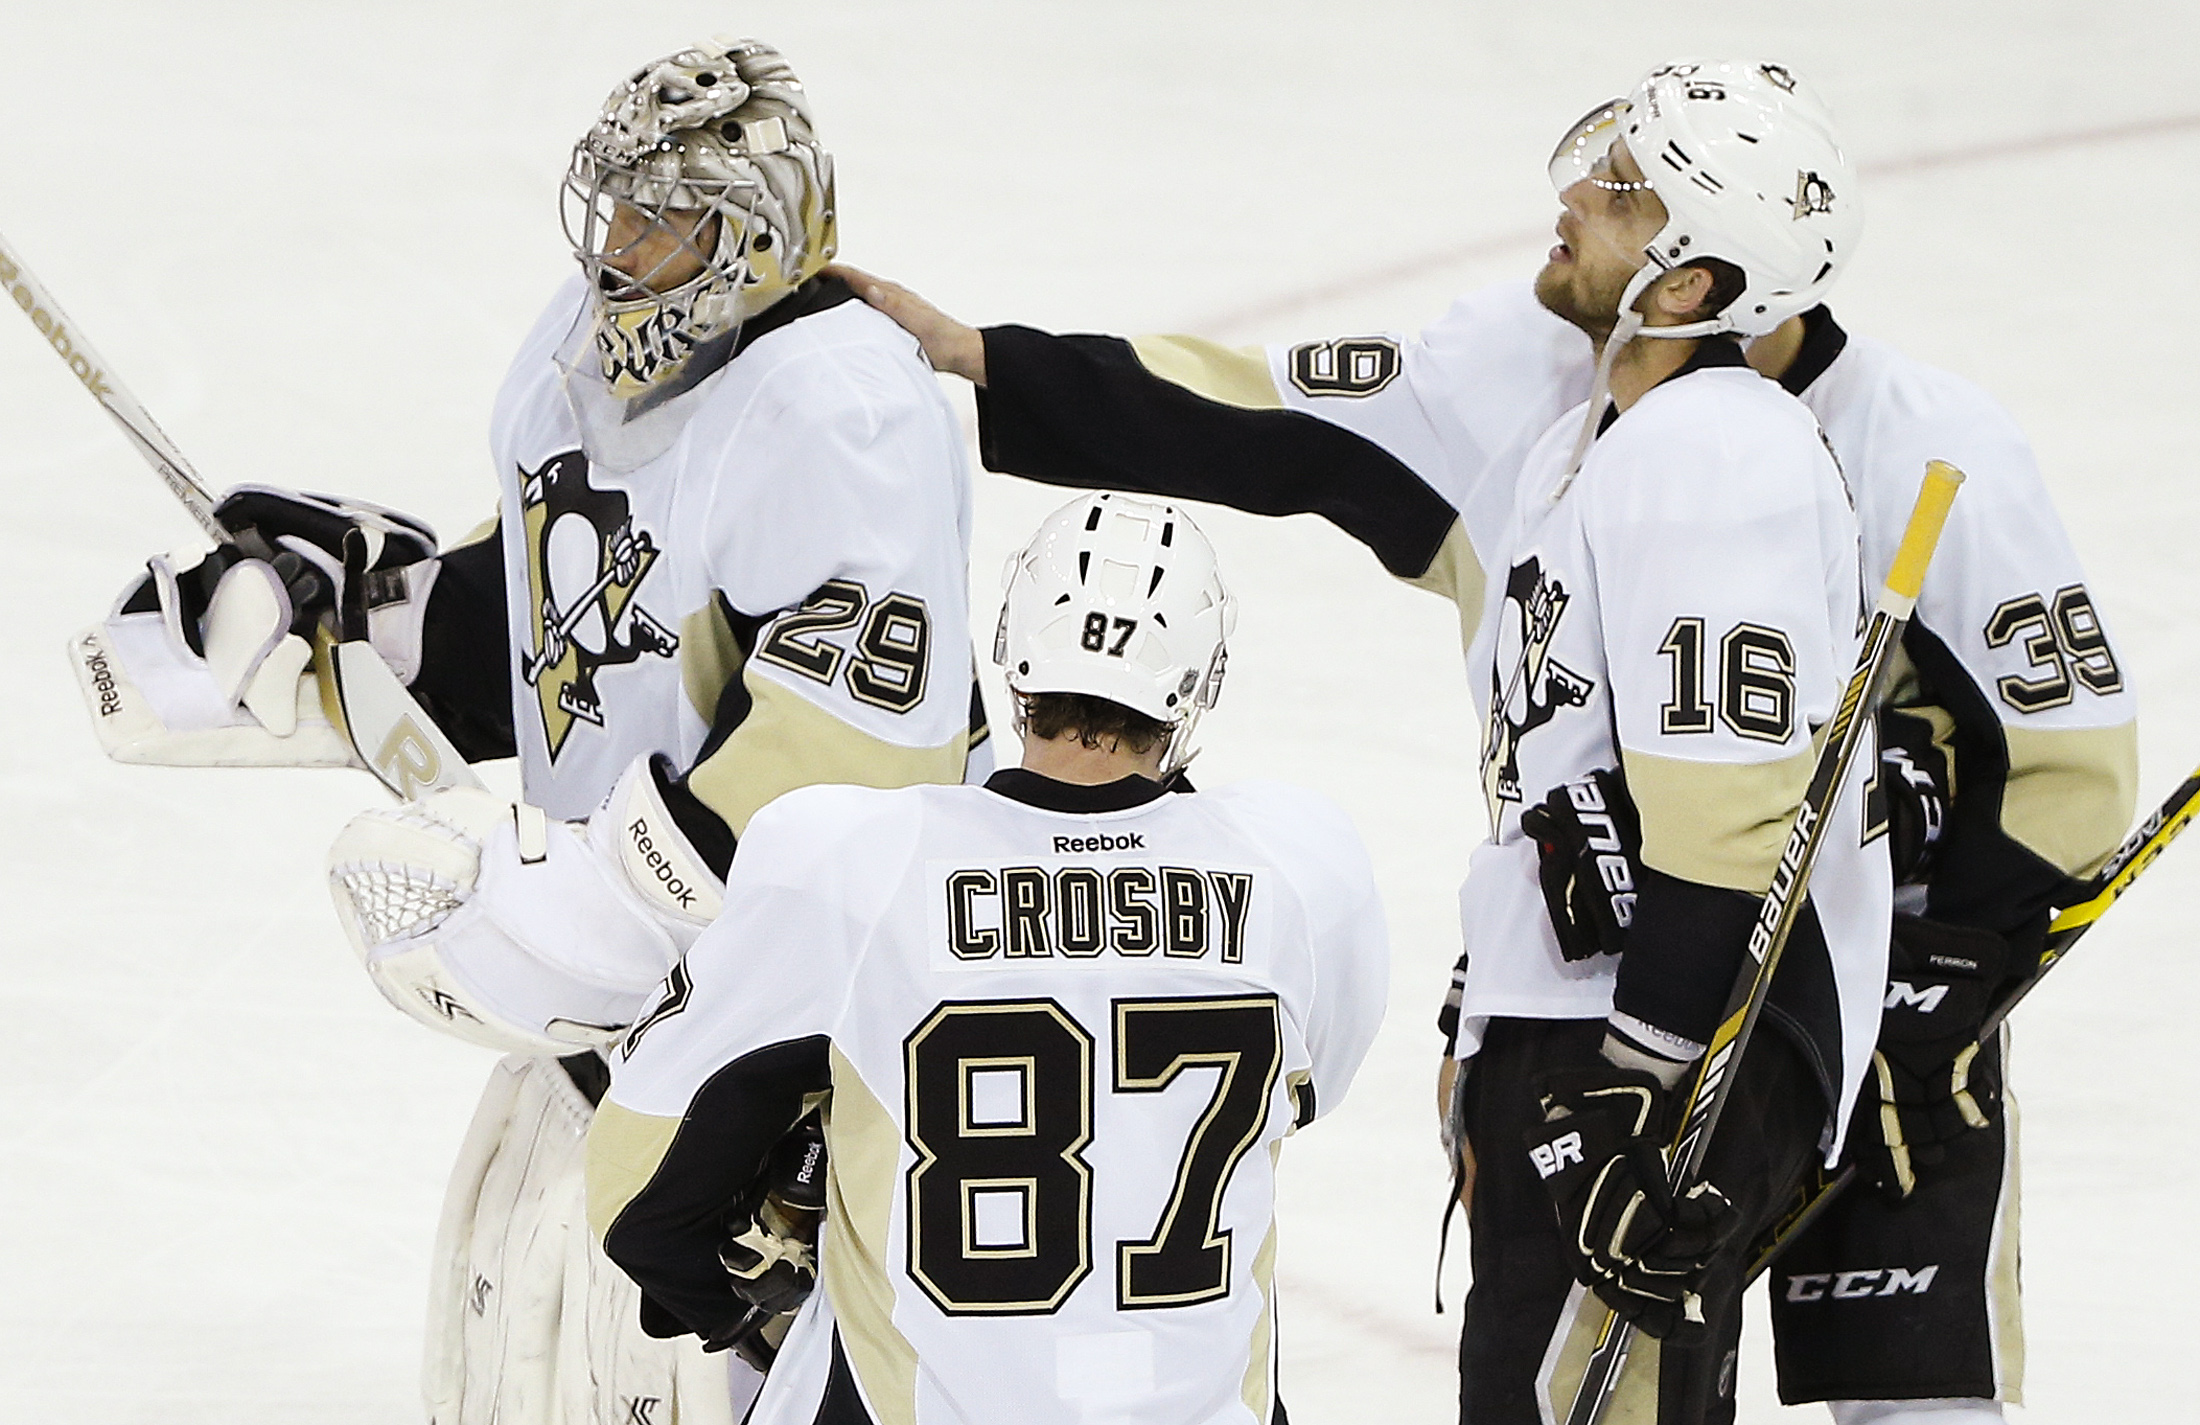 Pittsburgh Penguins goalie Marc-Andre Fleury (29) is consoled by center Brandon Sutter (16), left wing David Perron (39) and center Sidney Crosby (87) after the New York Rangers scored in overtime to win Game 5 in the first round of the NHL hockey Stanley